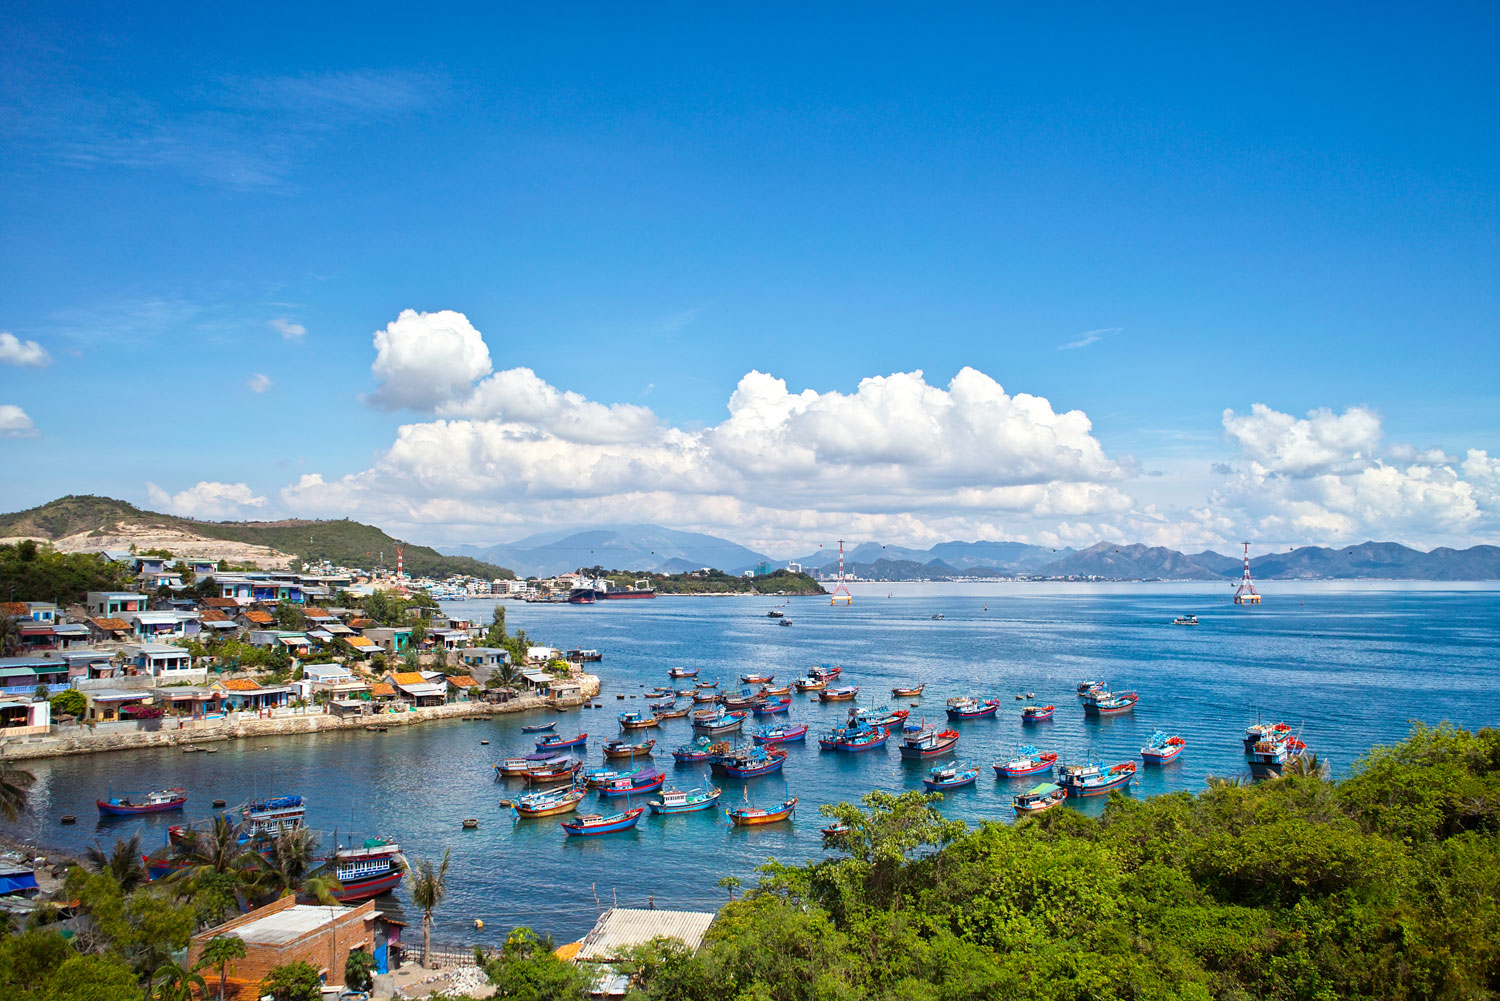 Mieu Island Fishing Village